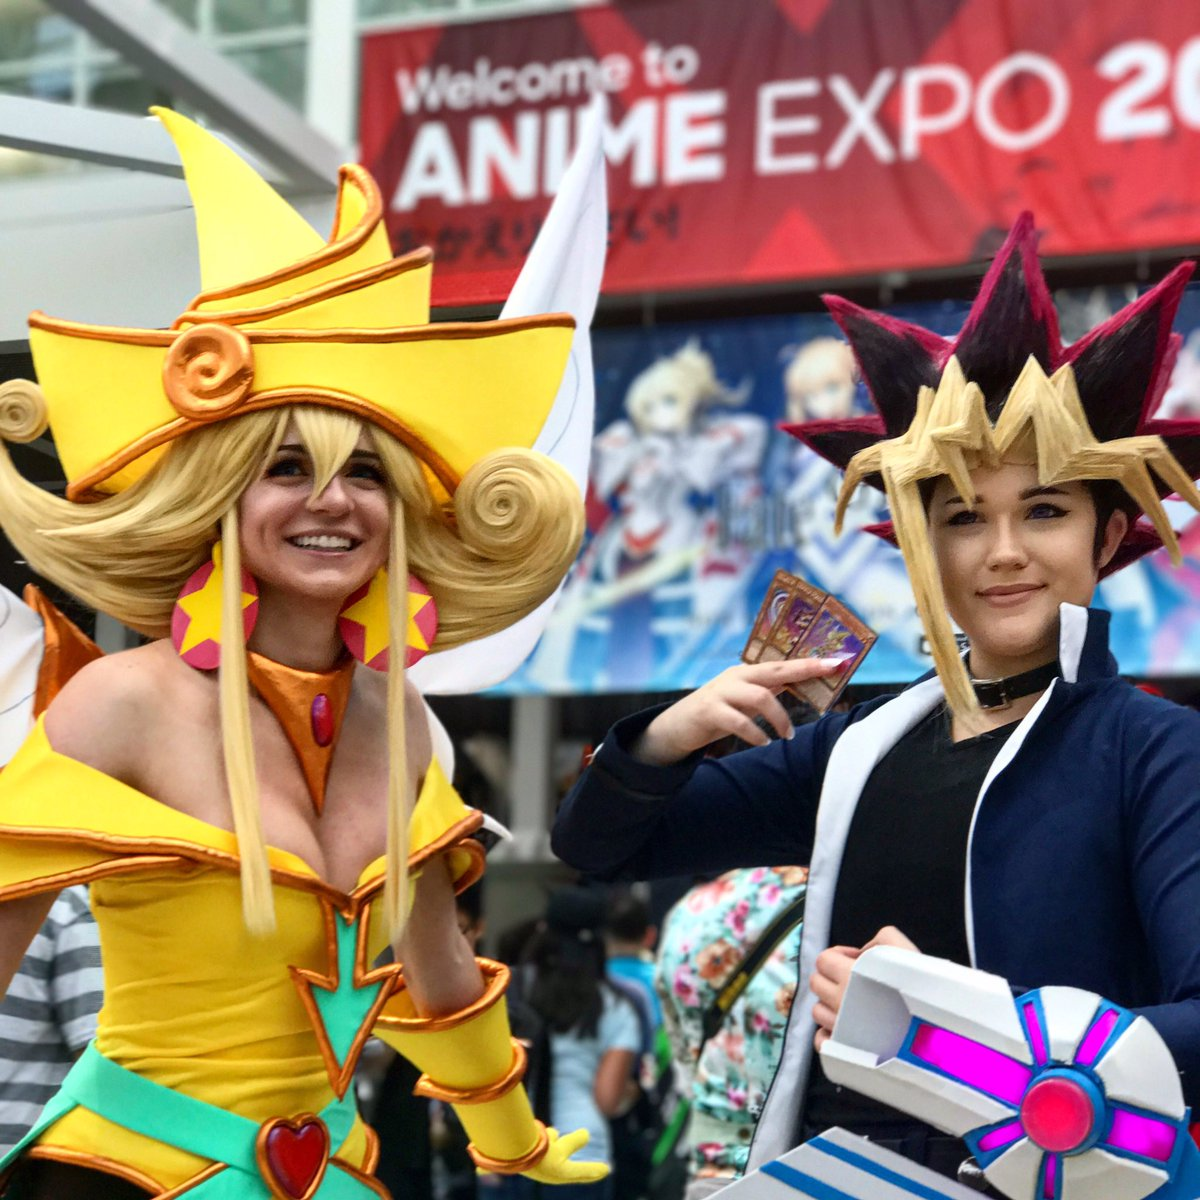 Digital La Anime Expo Features Panels Cosplay Games Vr And More